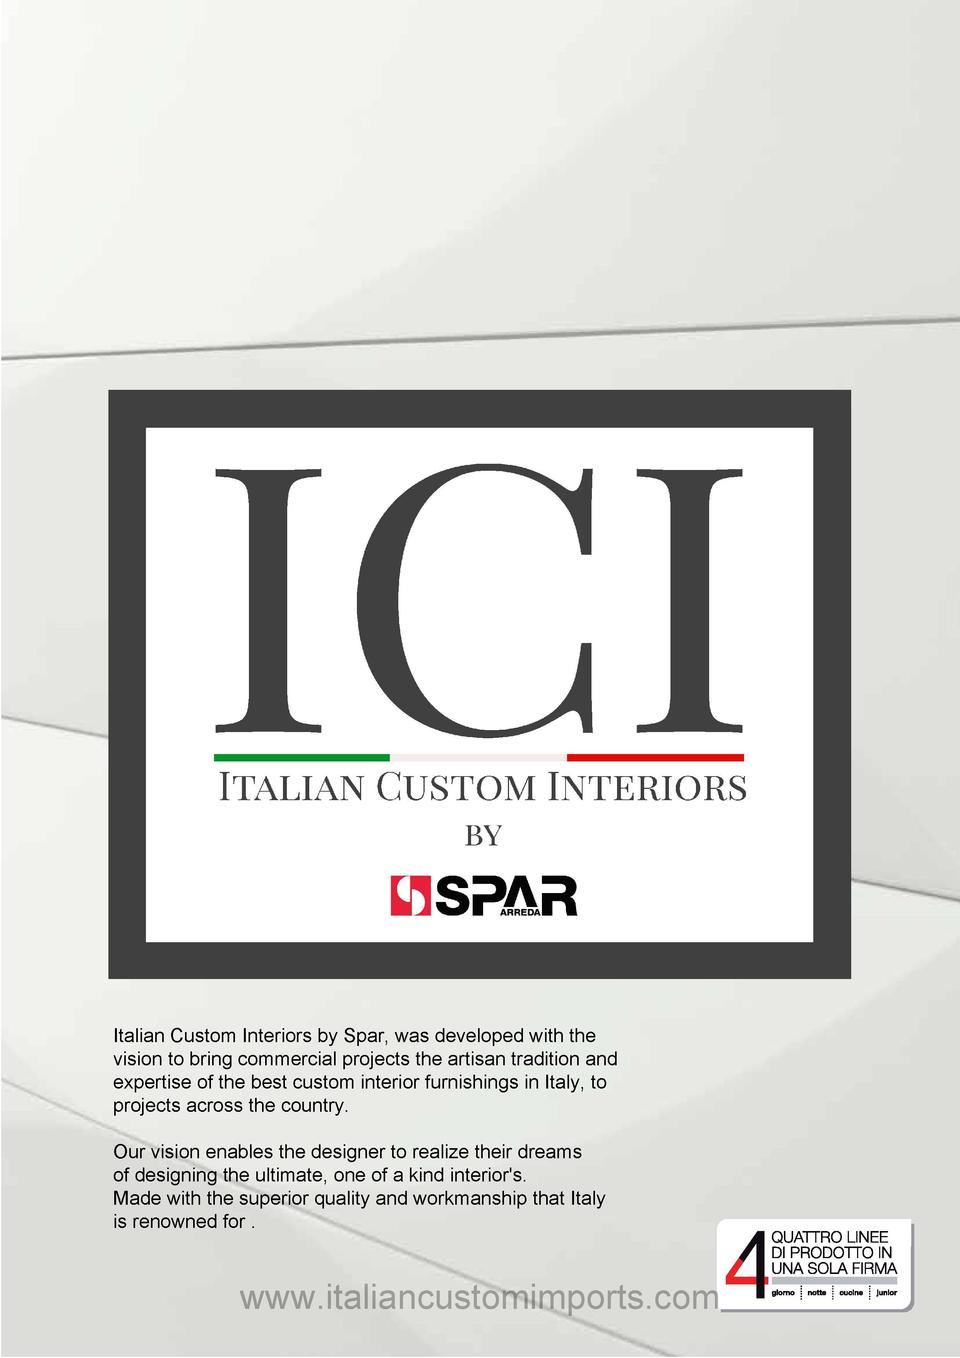 Italian Custom Interiors by Spar, was developed with the vision to bring commercial projects the artisan tradition and exp...